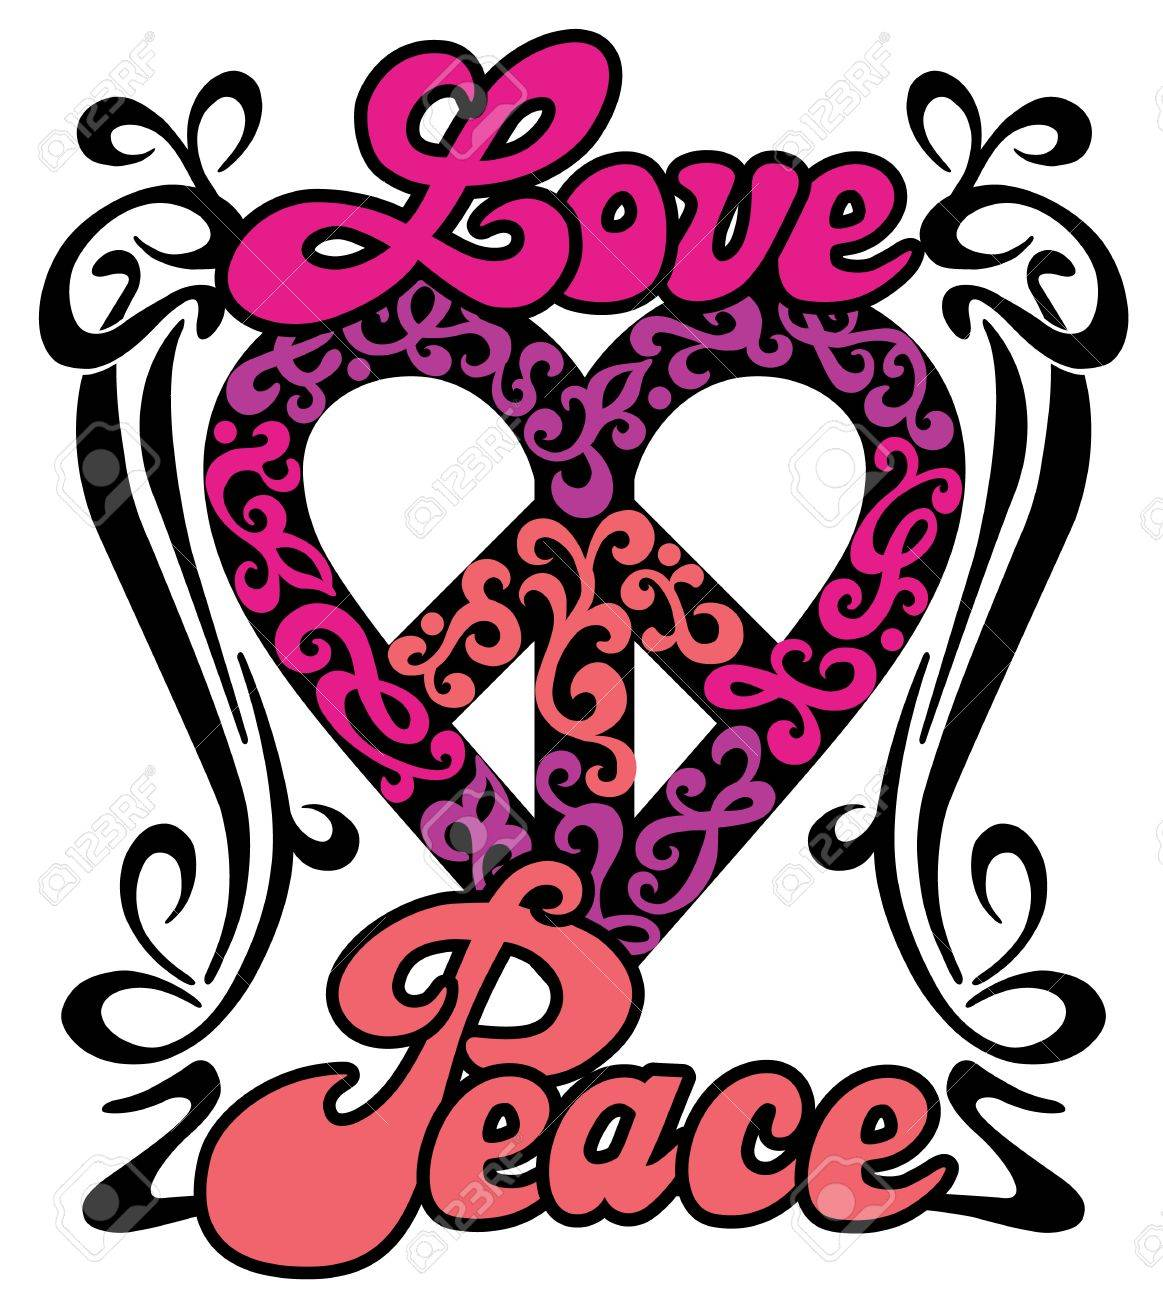 Love Peace Heart Retro Design Of A Love Peace Symbol With The Words